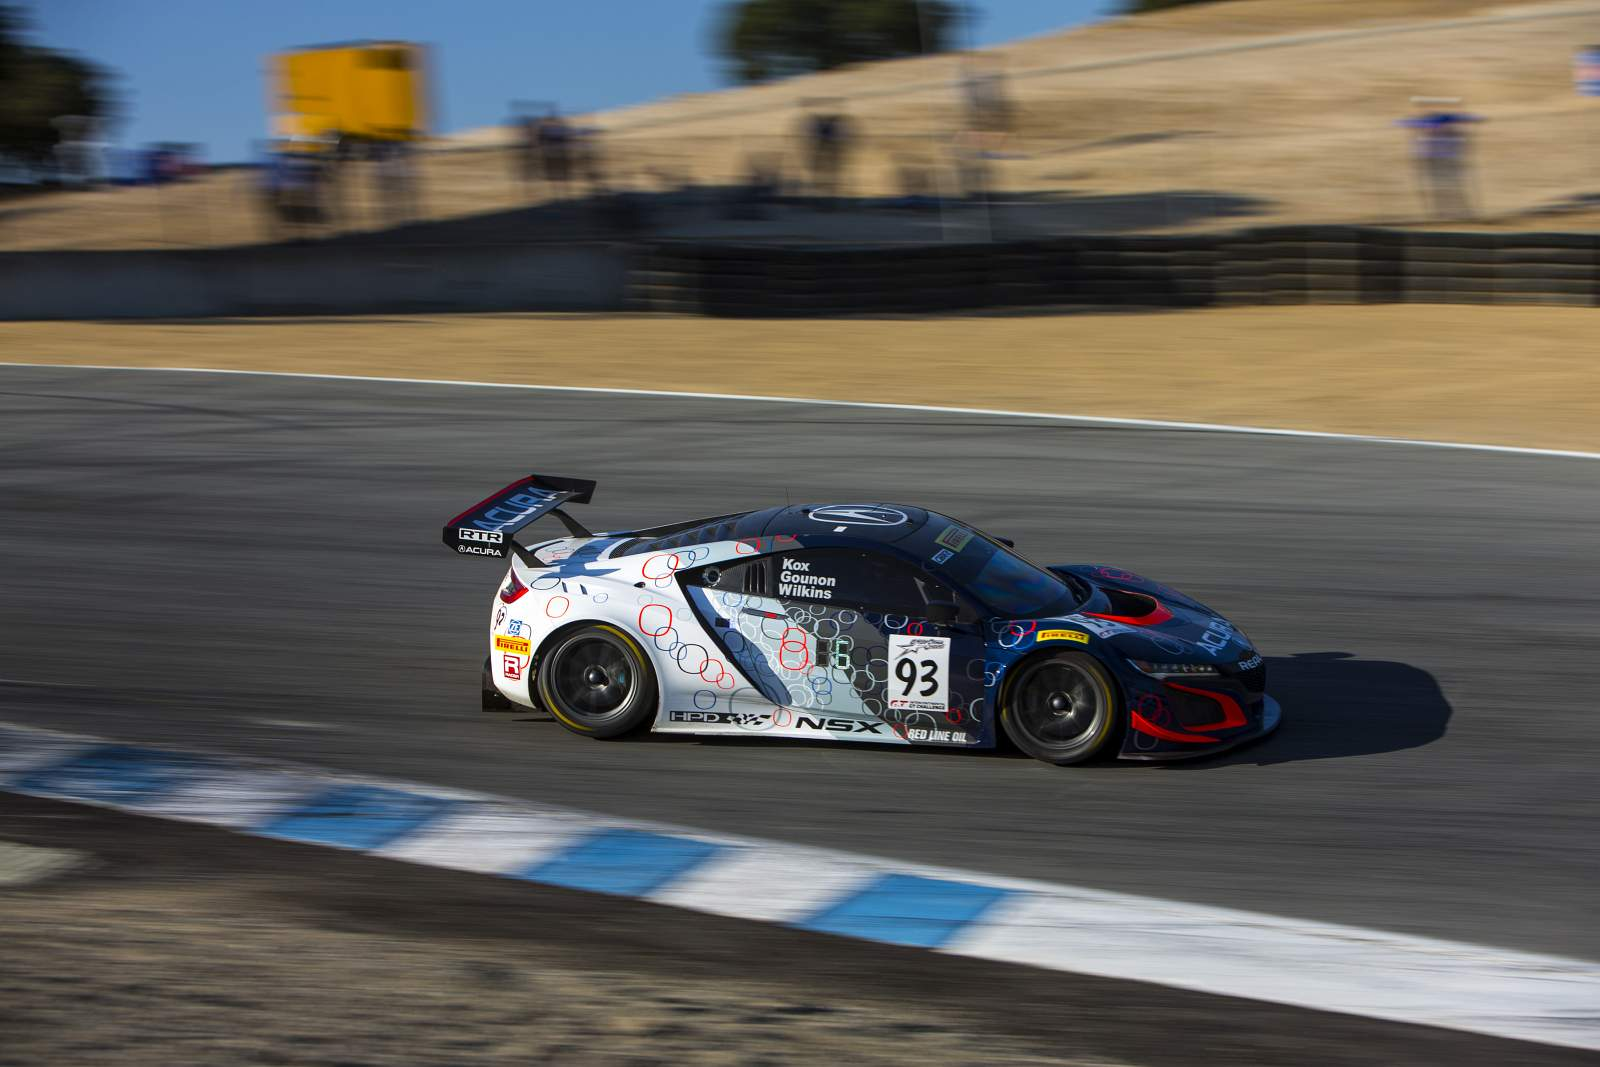 peter-kox-realtime-racing-pirelli-world-challenge-california-046